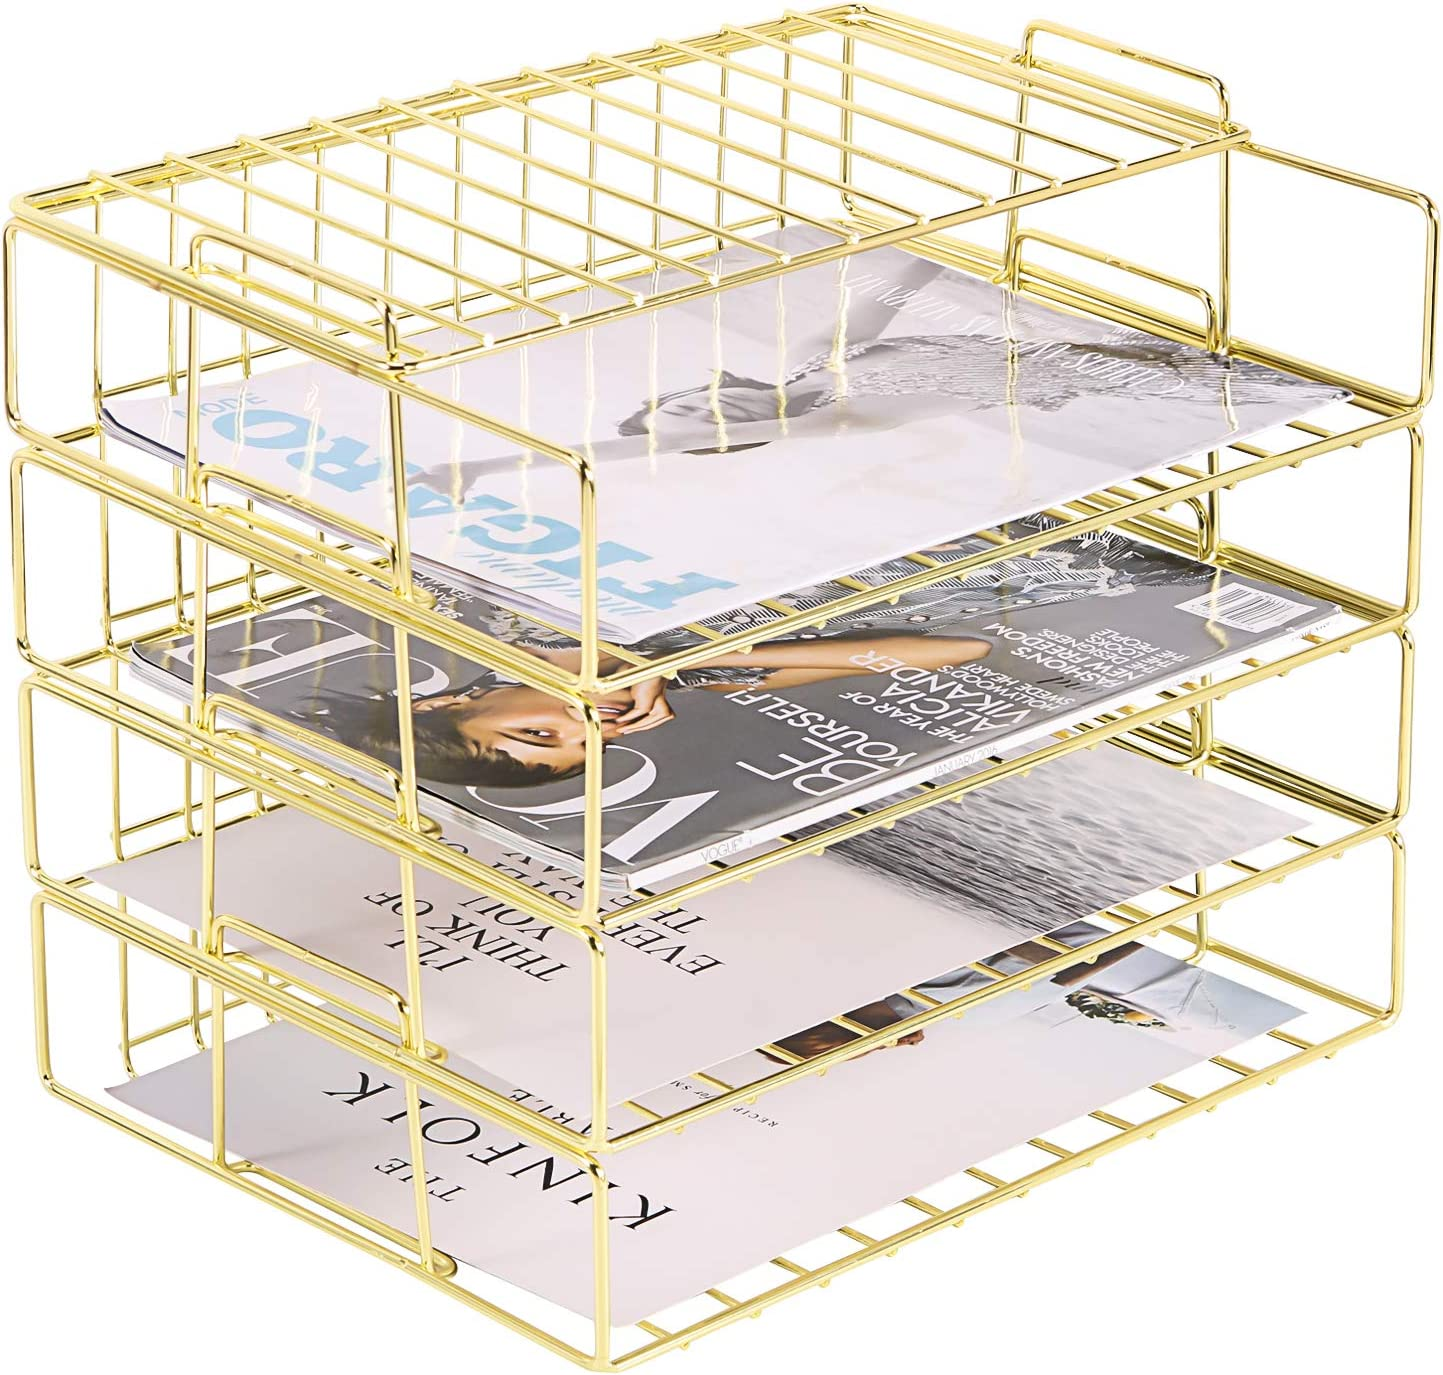 Hosaken Paper Tray, 9 Tier Stackable Letter Tray, Decorative Desk File  Organizer Rack for Office Supplies and Accessories, Letter Size, Gold